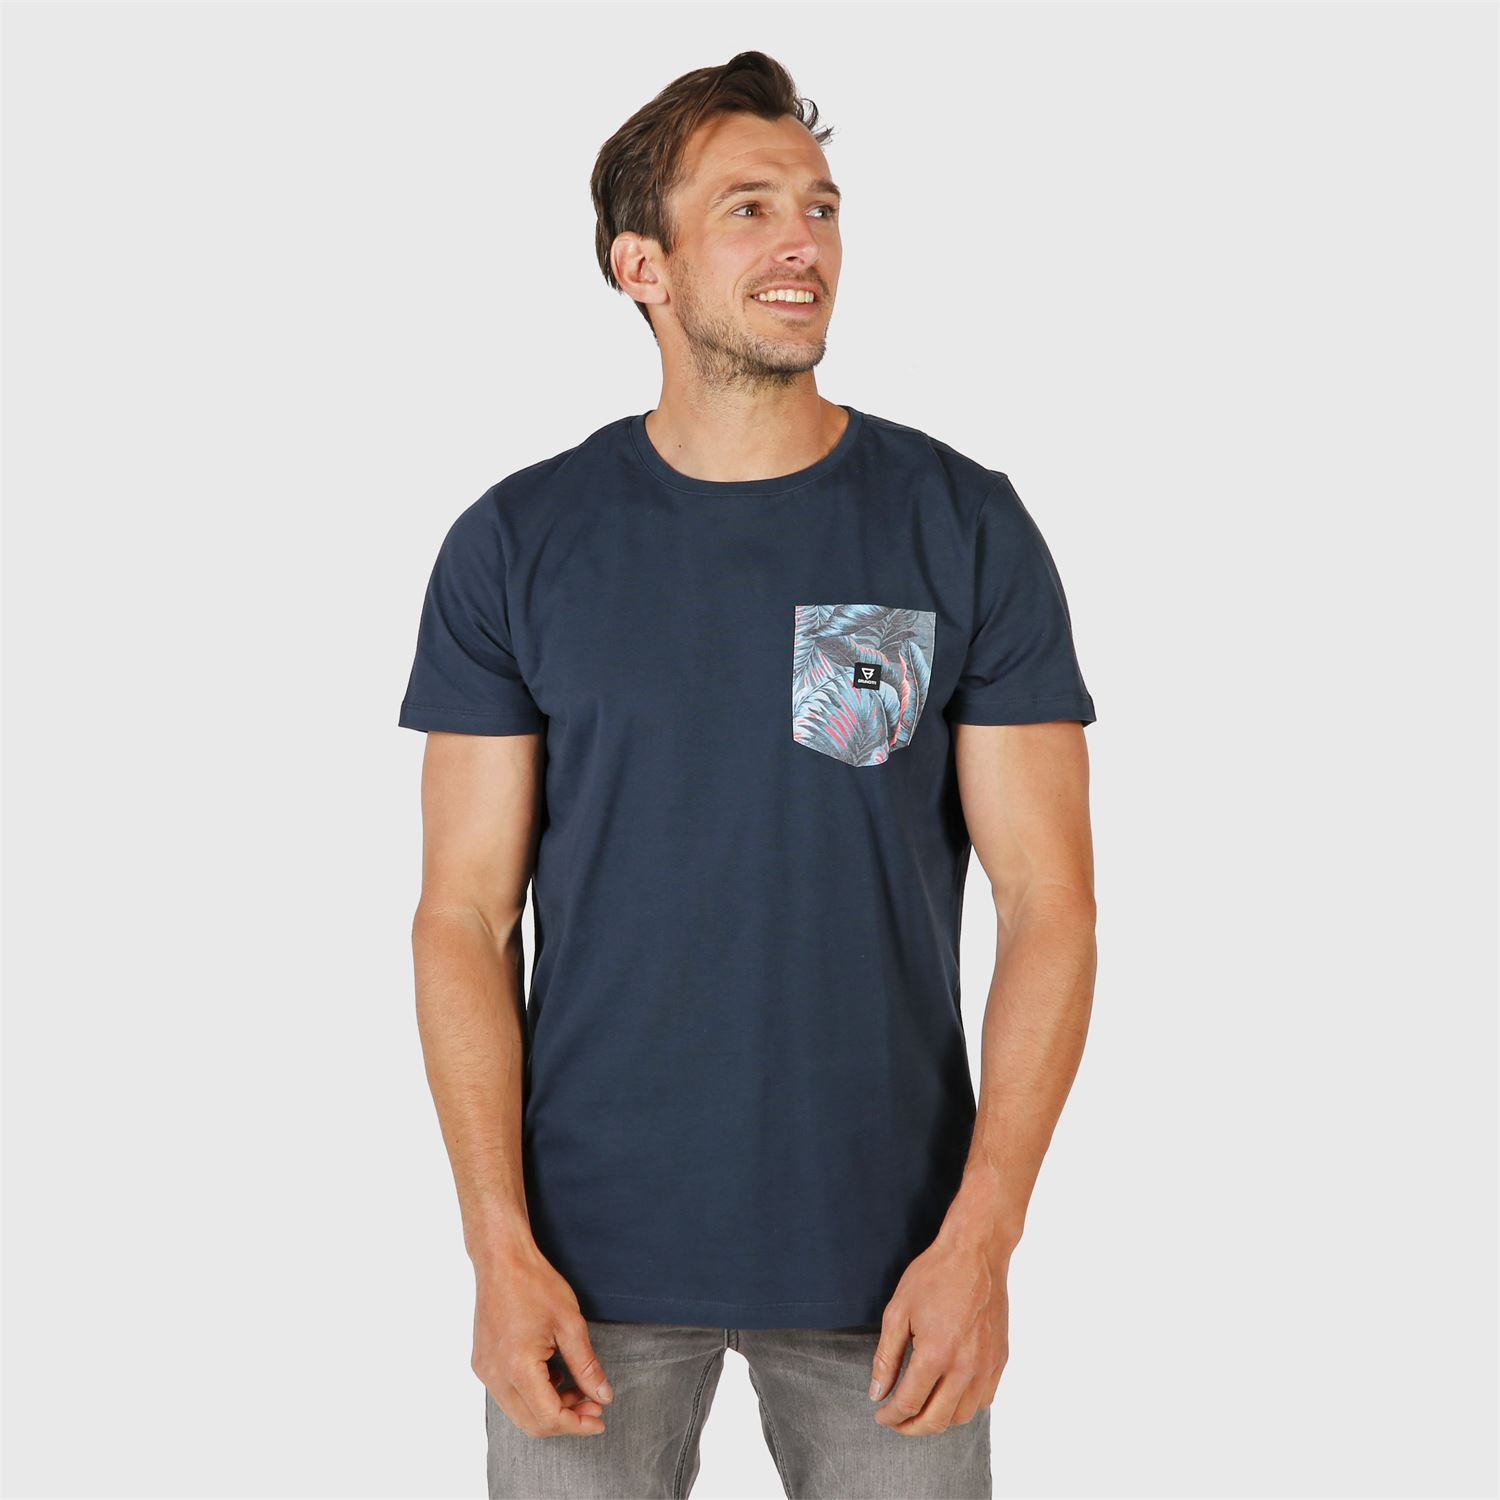 Axle-Pkt-AO Mens T-shirt